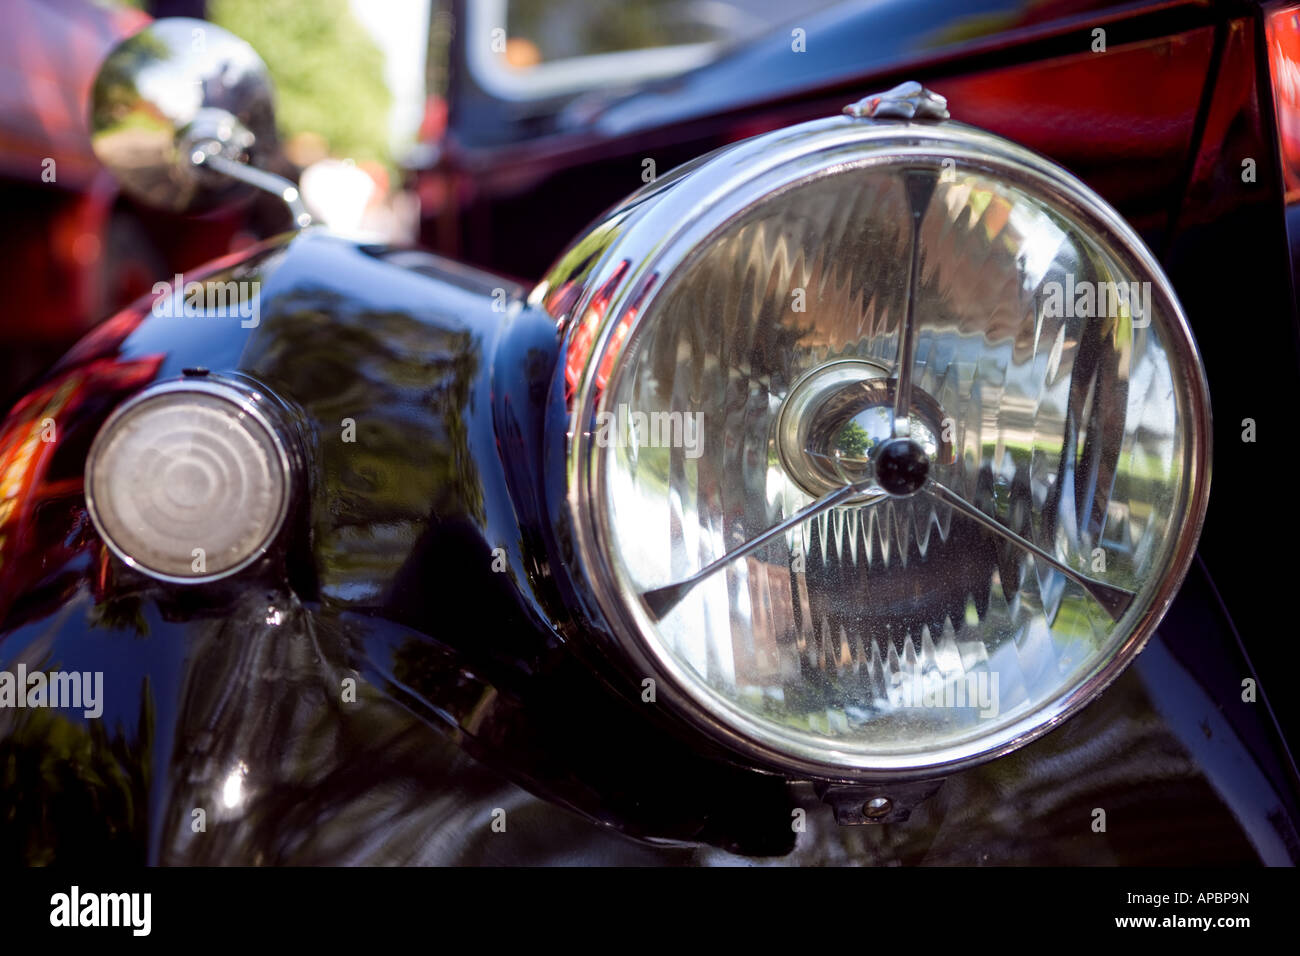 Close up of a headlight of vintage car at an English car rally - Stock Image